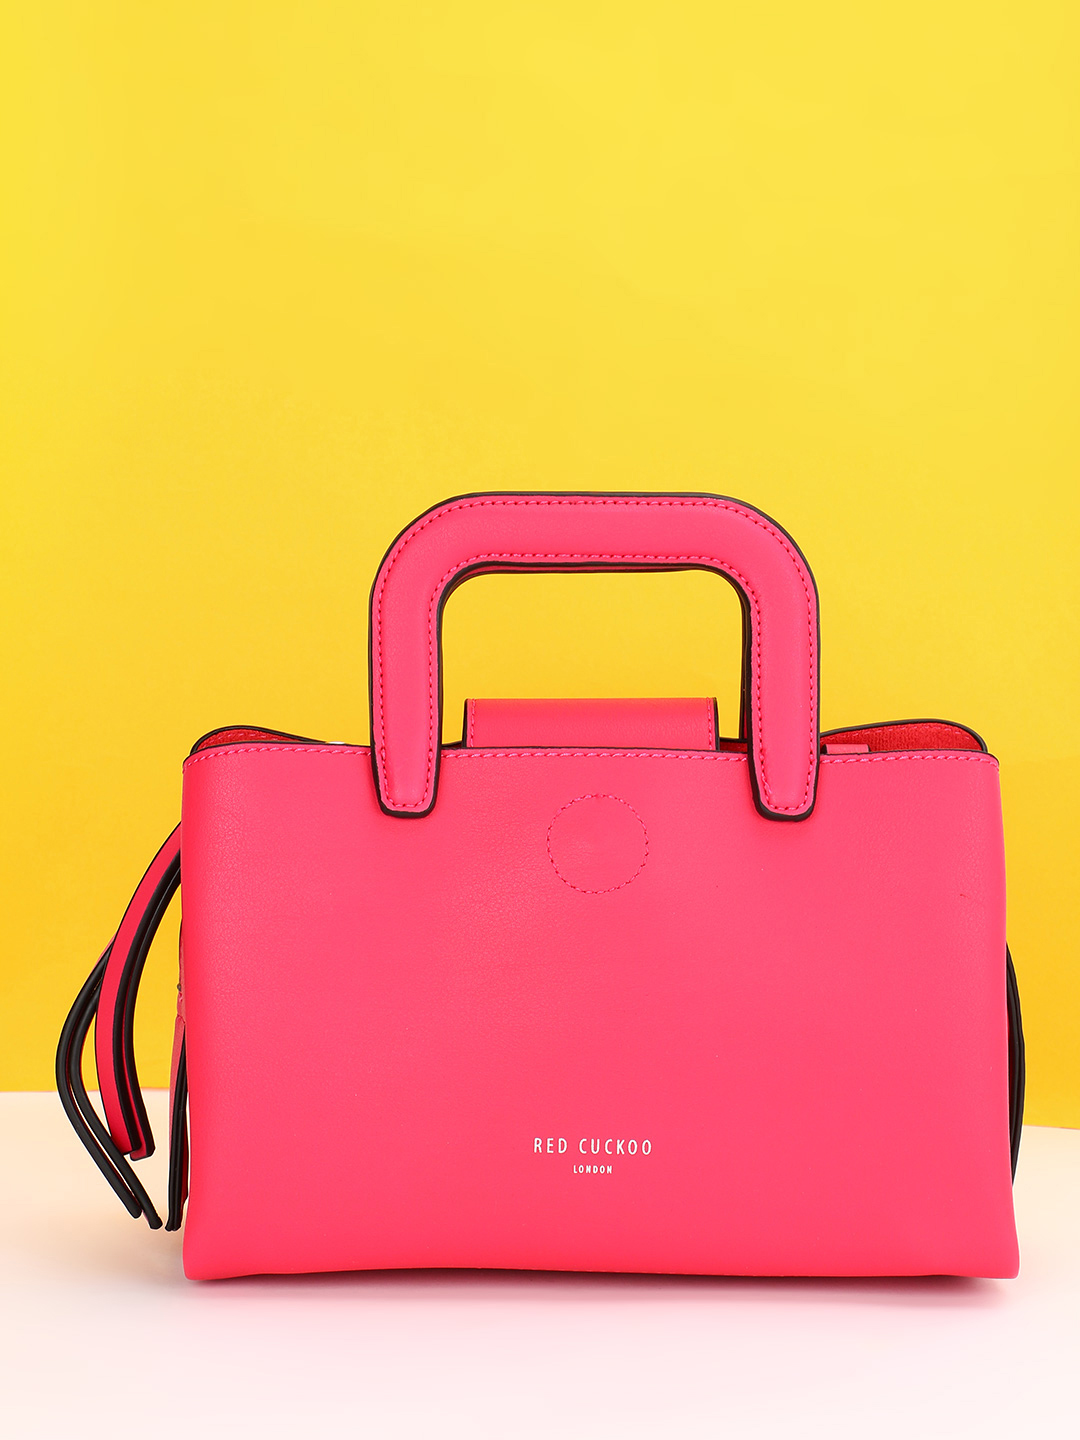 Red Cuckoo Pink Structured Tote Bag 1